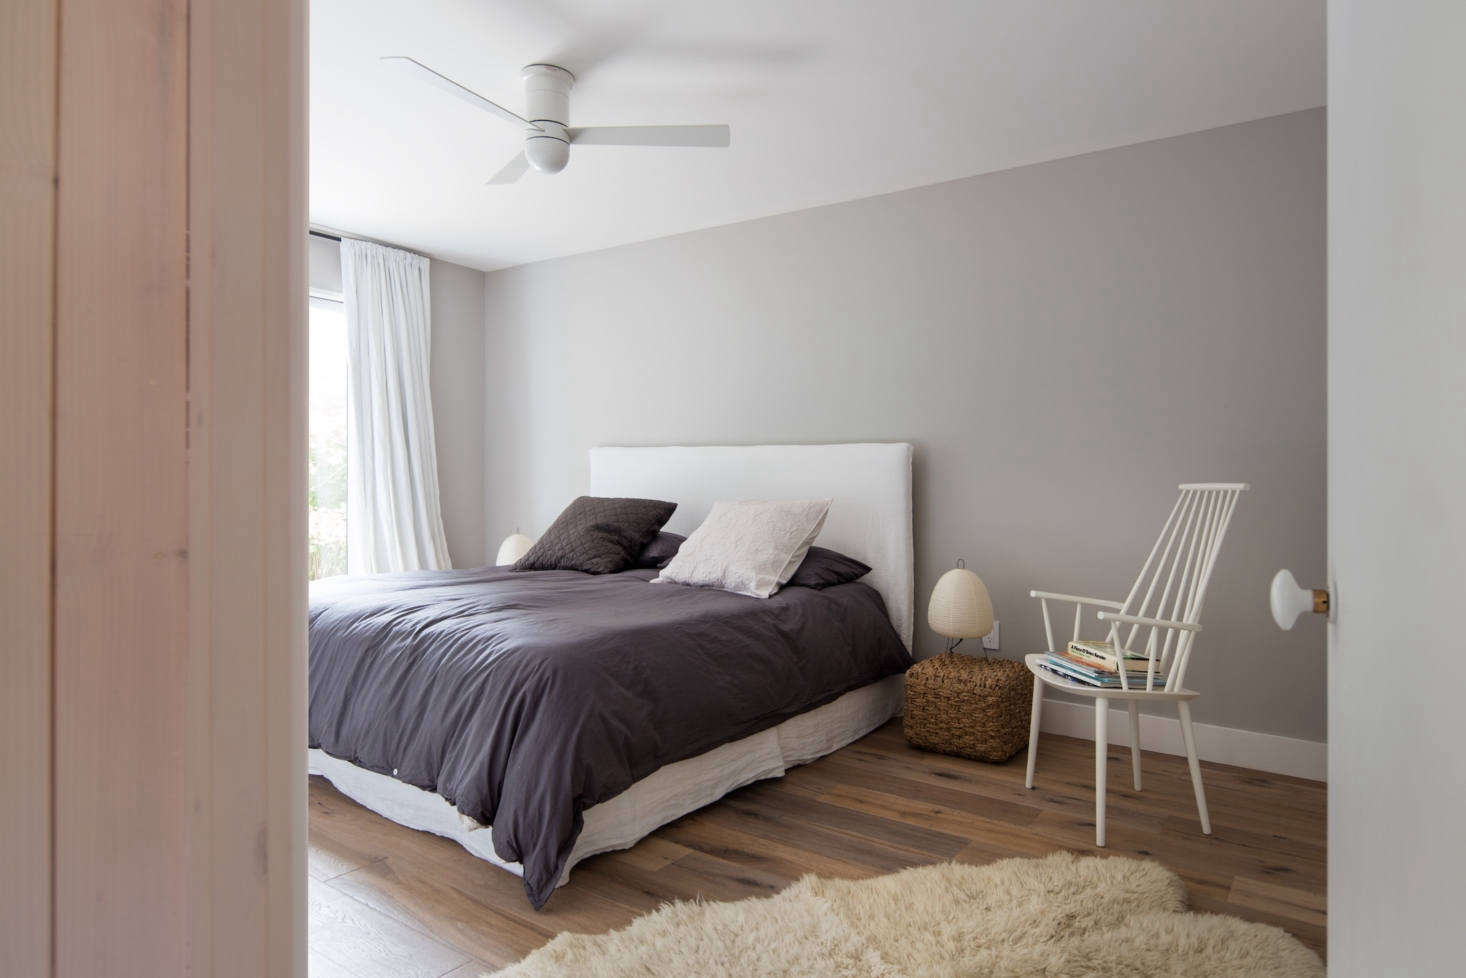 The bedrooms are the only rooms with painted walls.